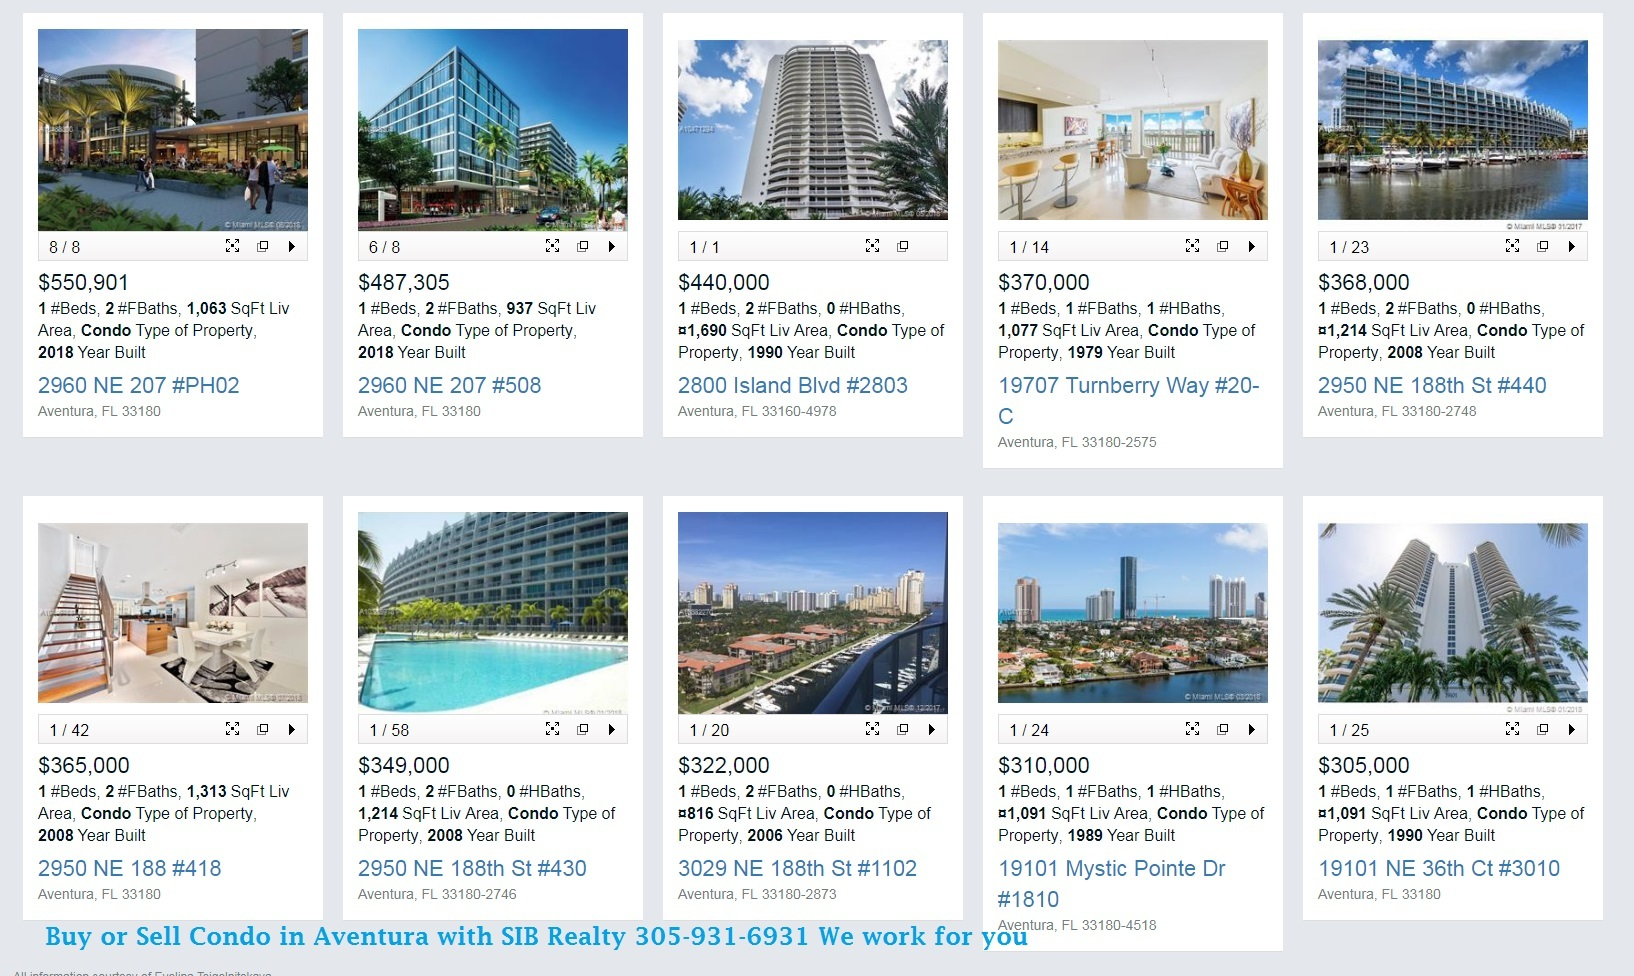 One Bedroom Condos Sold  in Aventura in 2018 View our website SIB Realty or Call for details Evelina Tsigelnitskaya